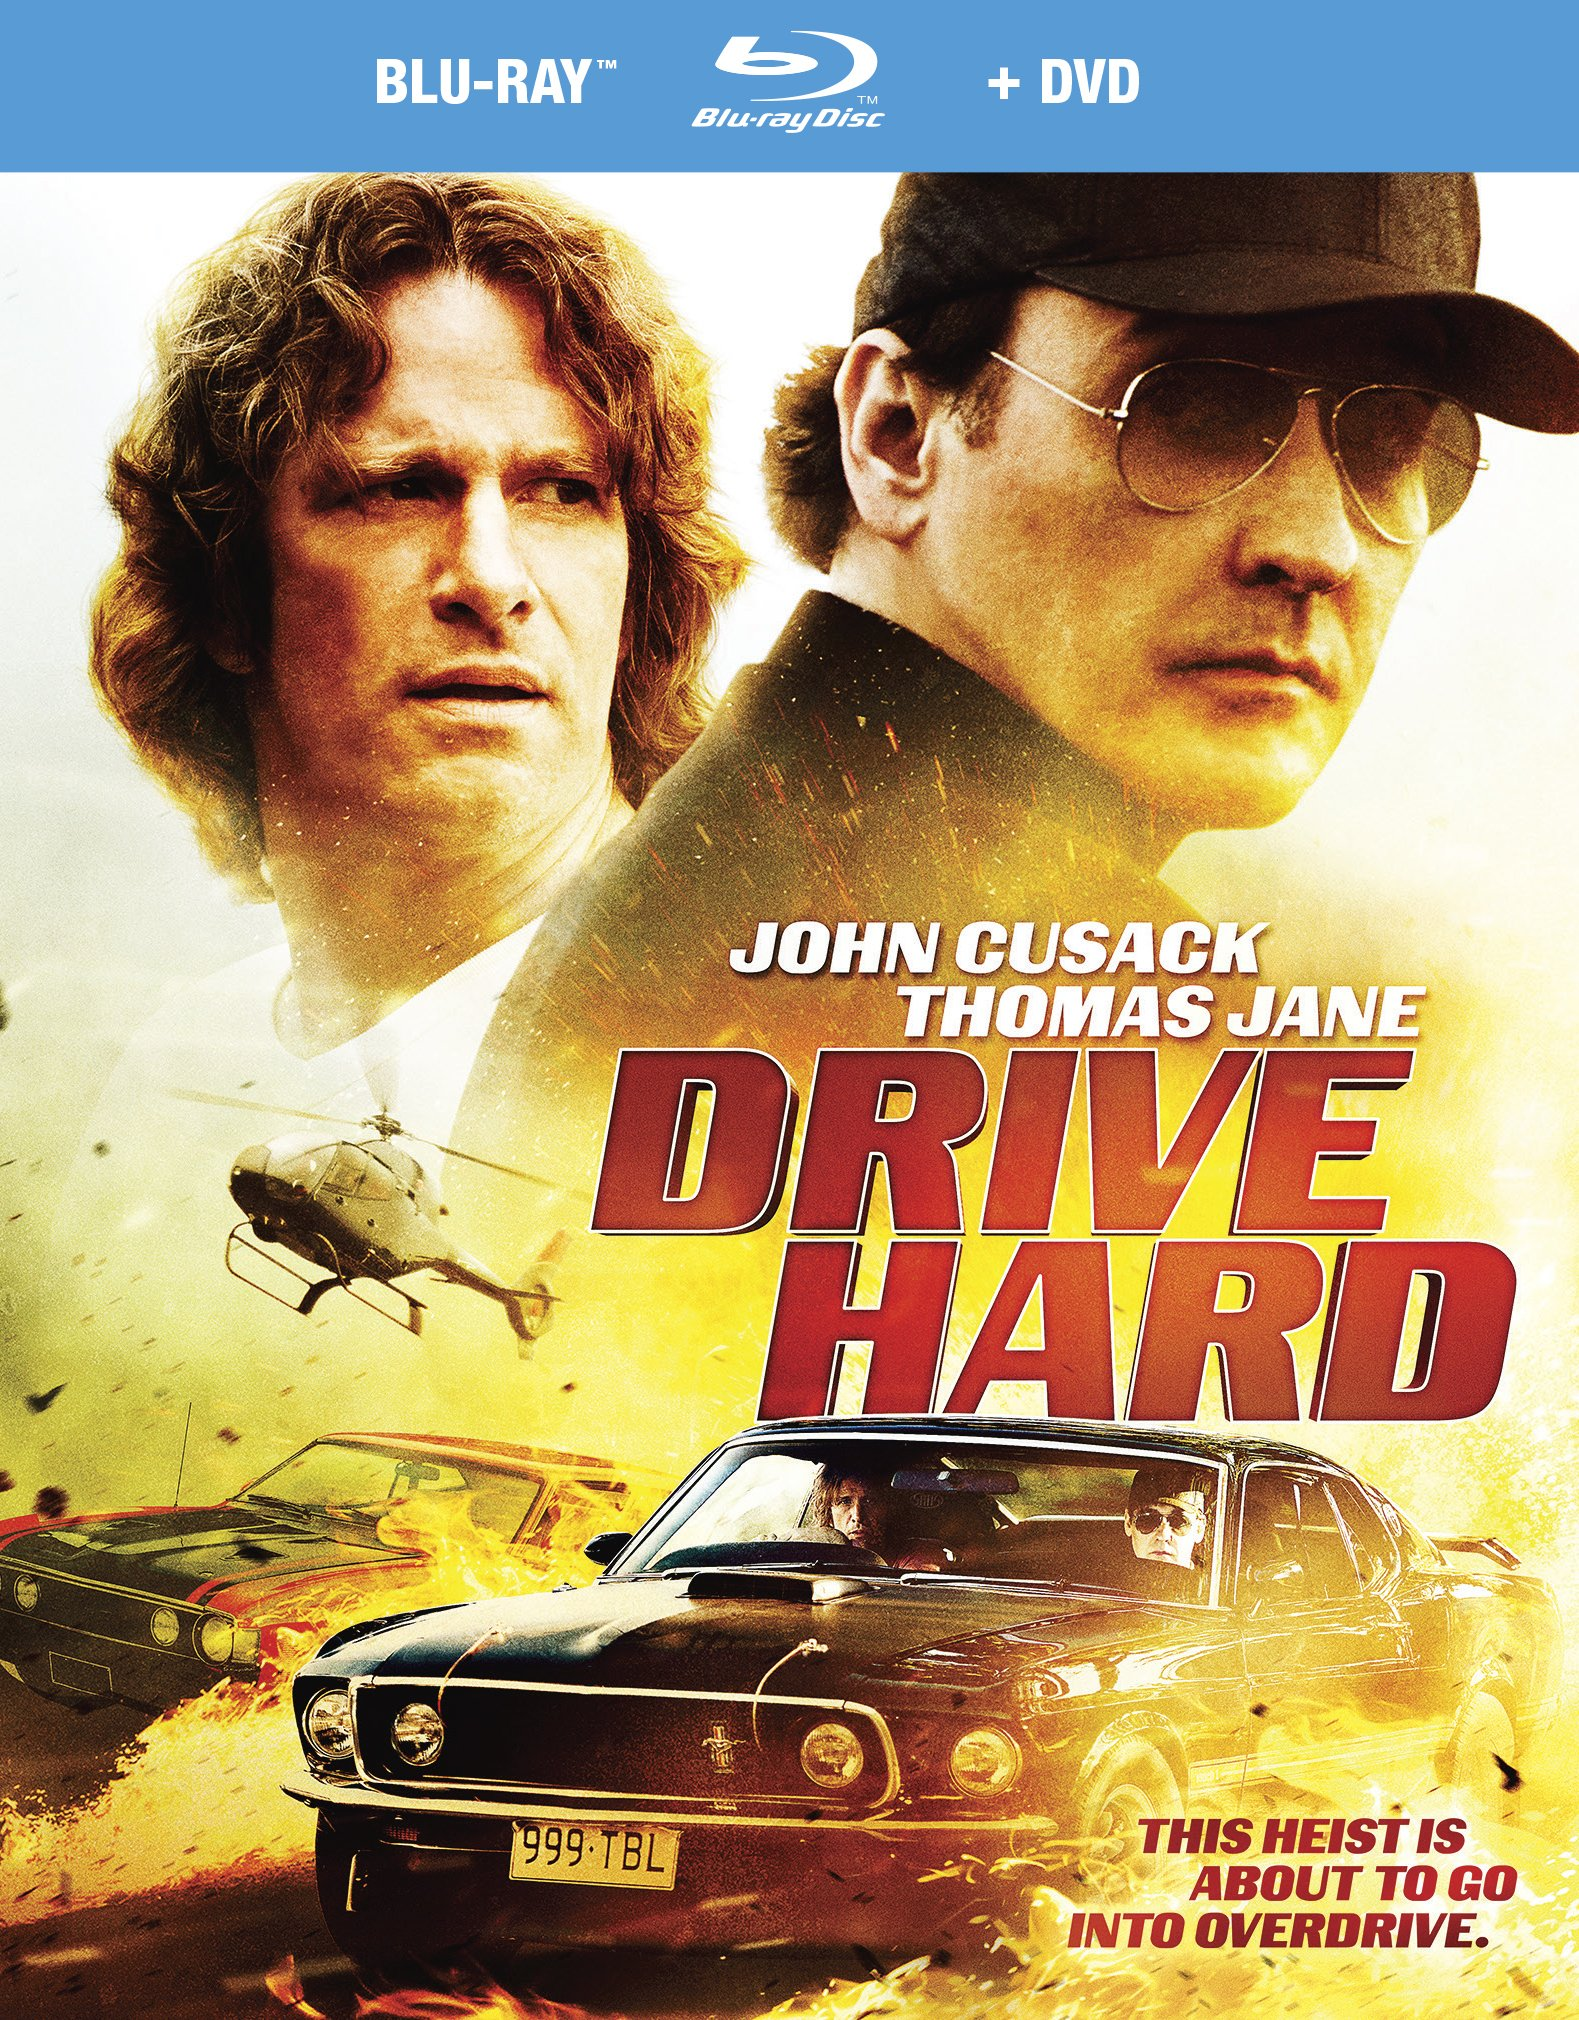 Blu-ray : Drive Hard (With DVD, 2PC)